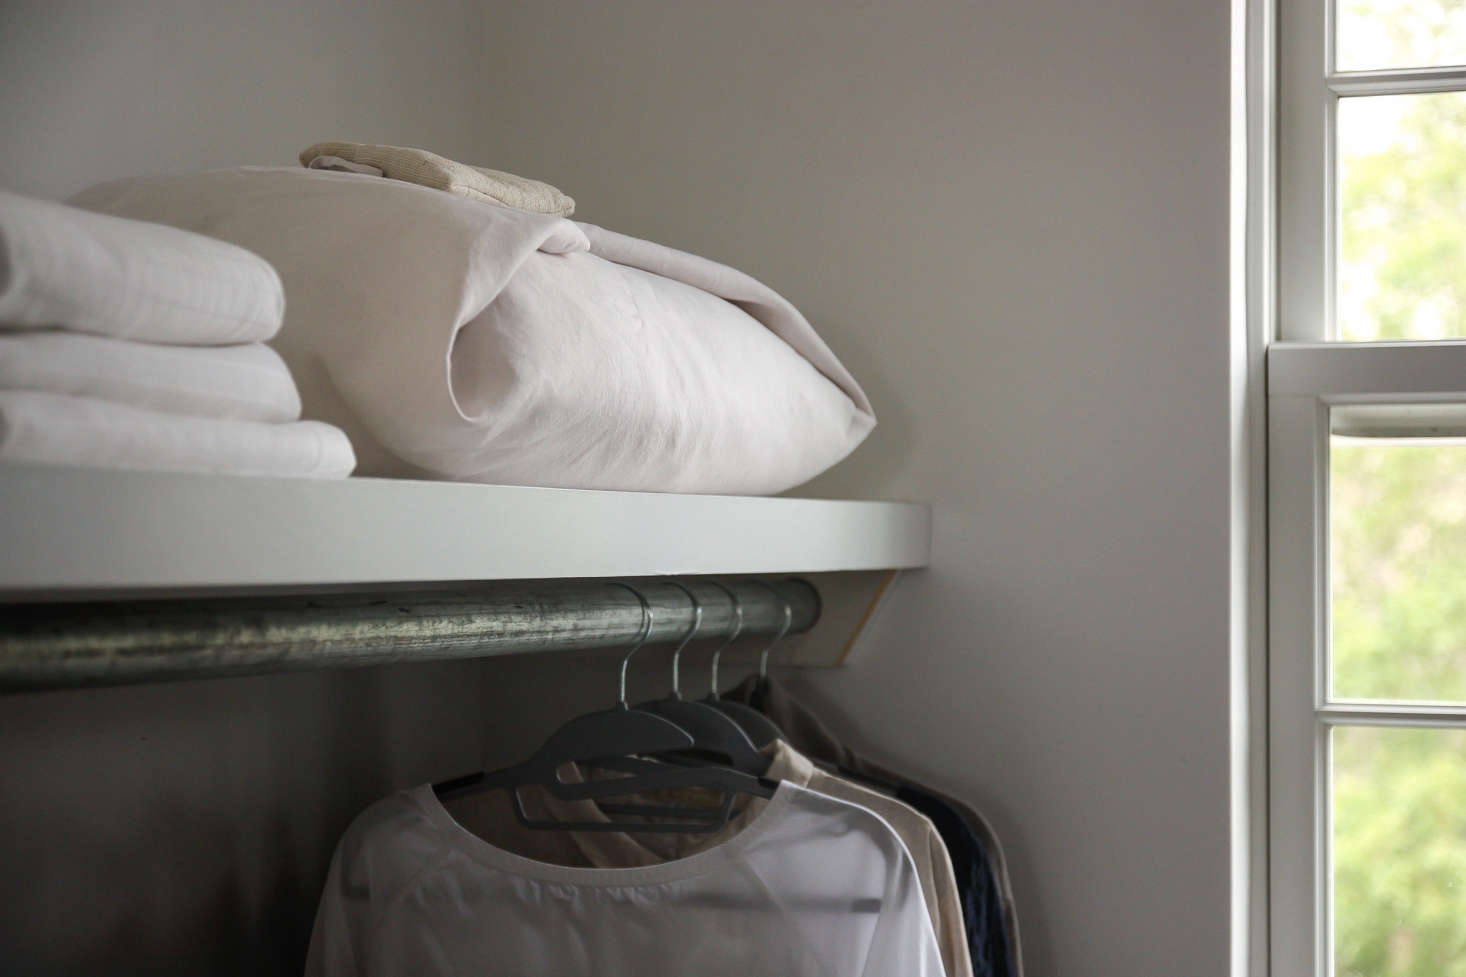 We stored an extra duvet wrapped in an old linen sheet, folded furoshiki-style.